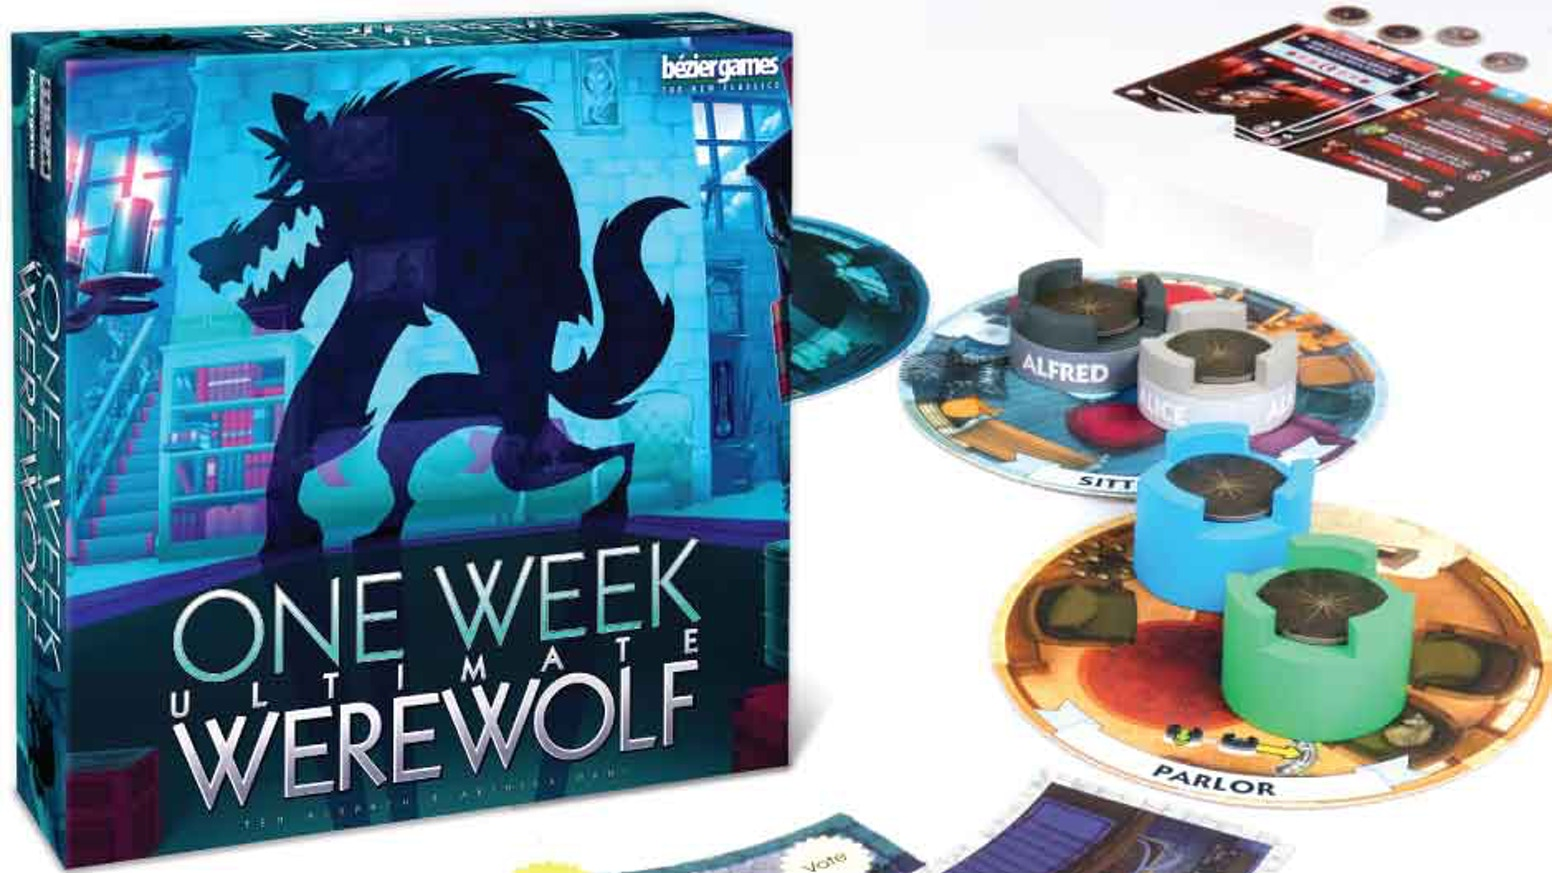 One Week Ultimate Werewolf takes the exciting gameplay of One Night Ultimate Werewolf and twists it around to create a whole new game!